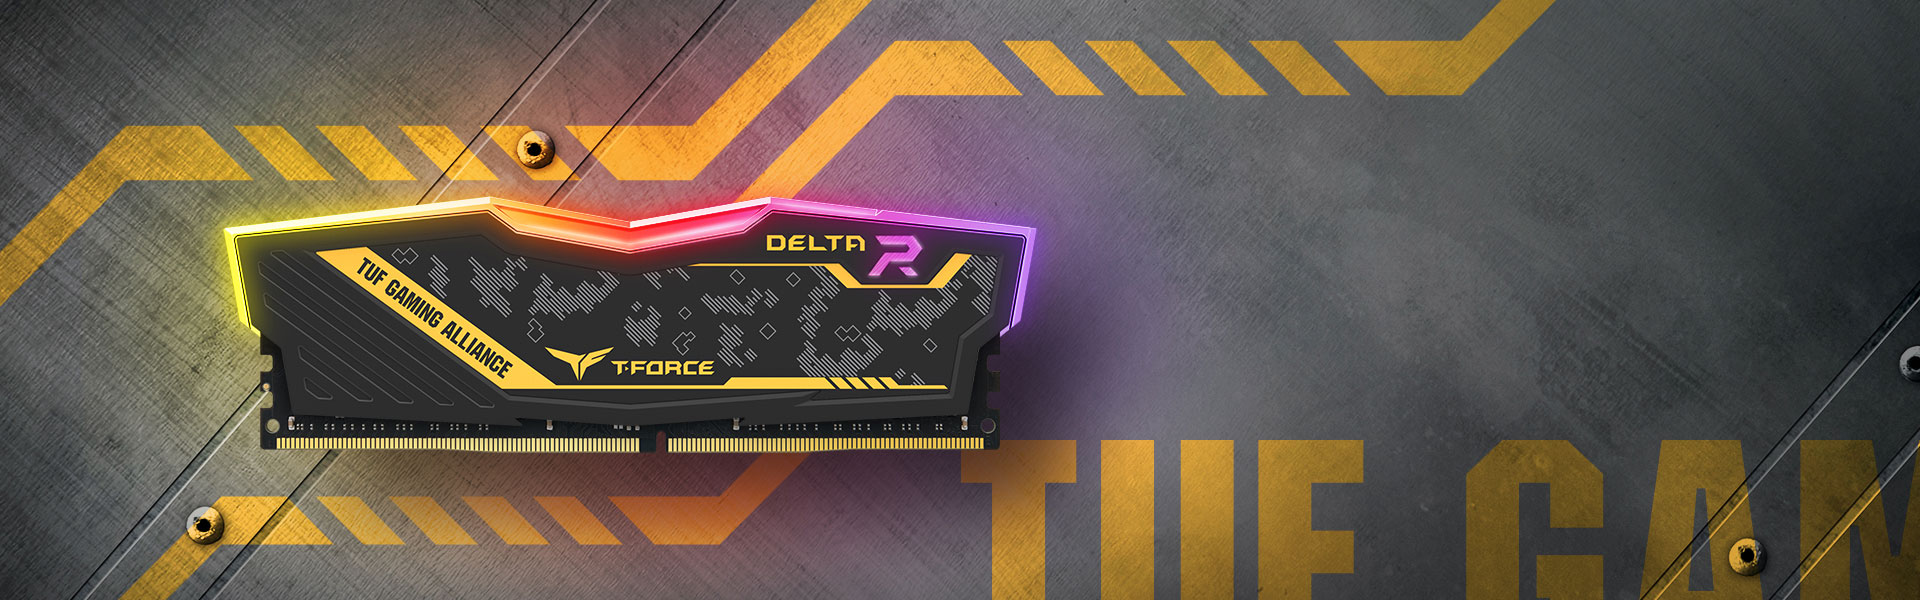 T-Force Delta TUF Gaming Alliance